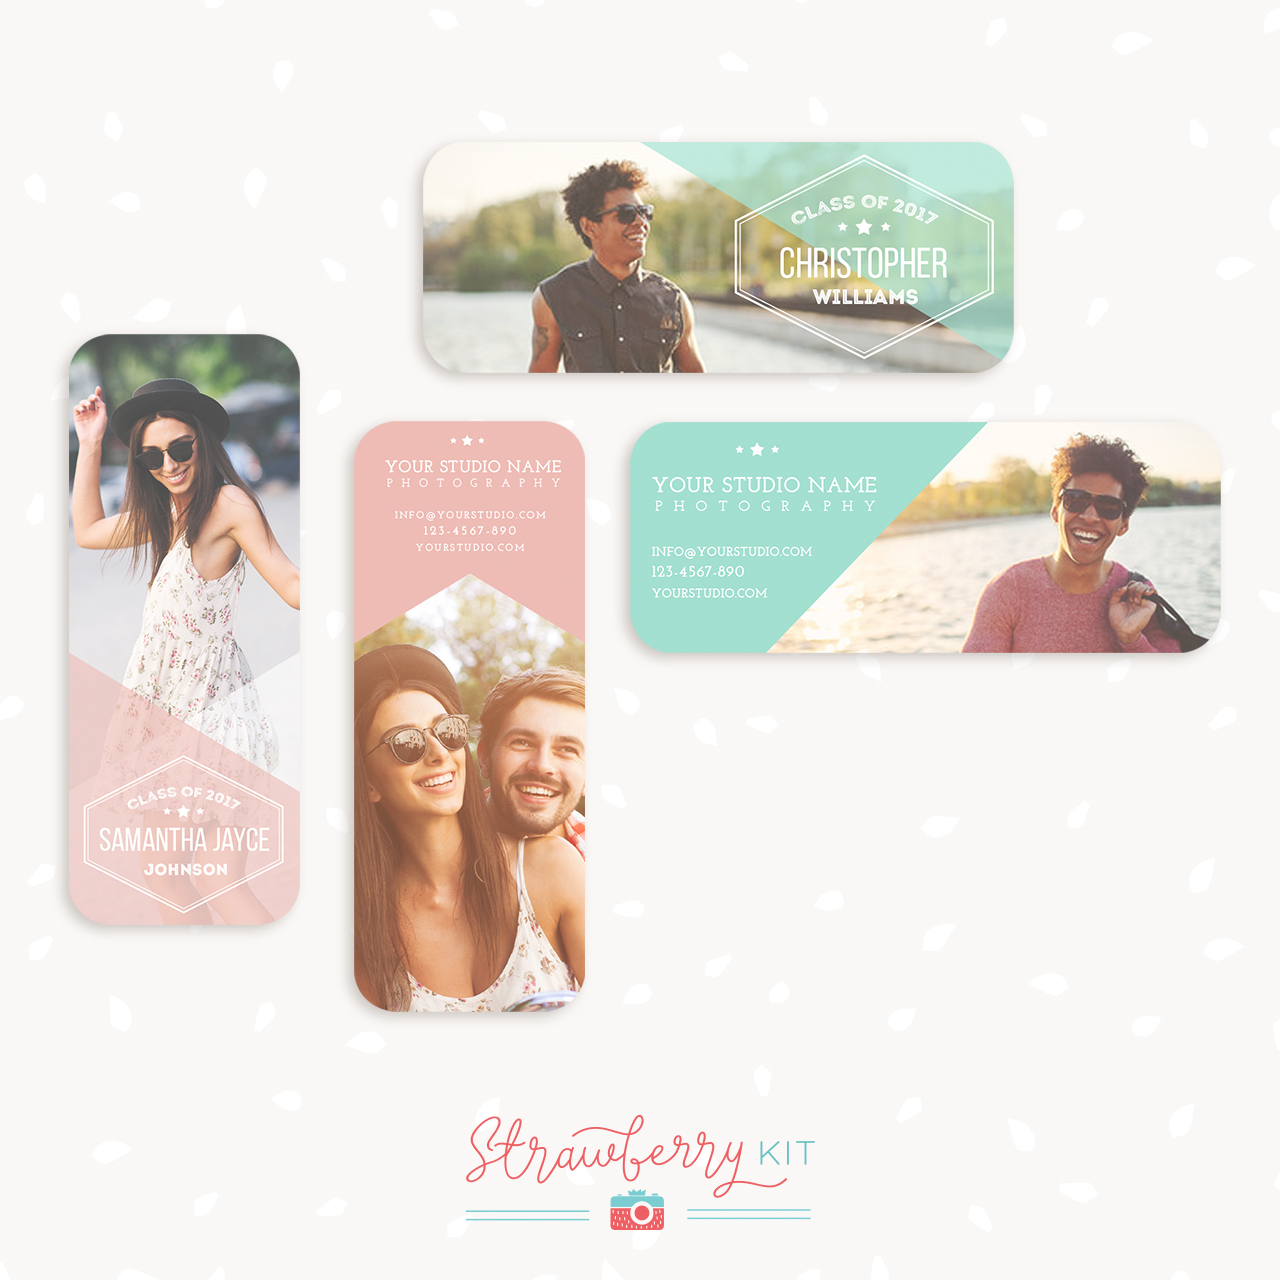 Senior Rep Cards Templates for Photographers - Strawberry Kit